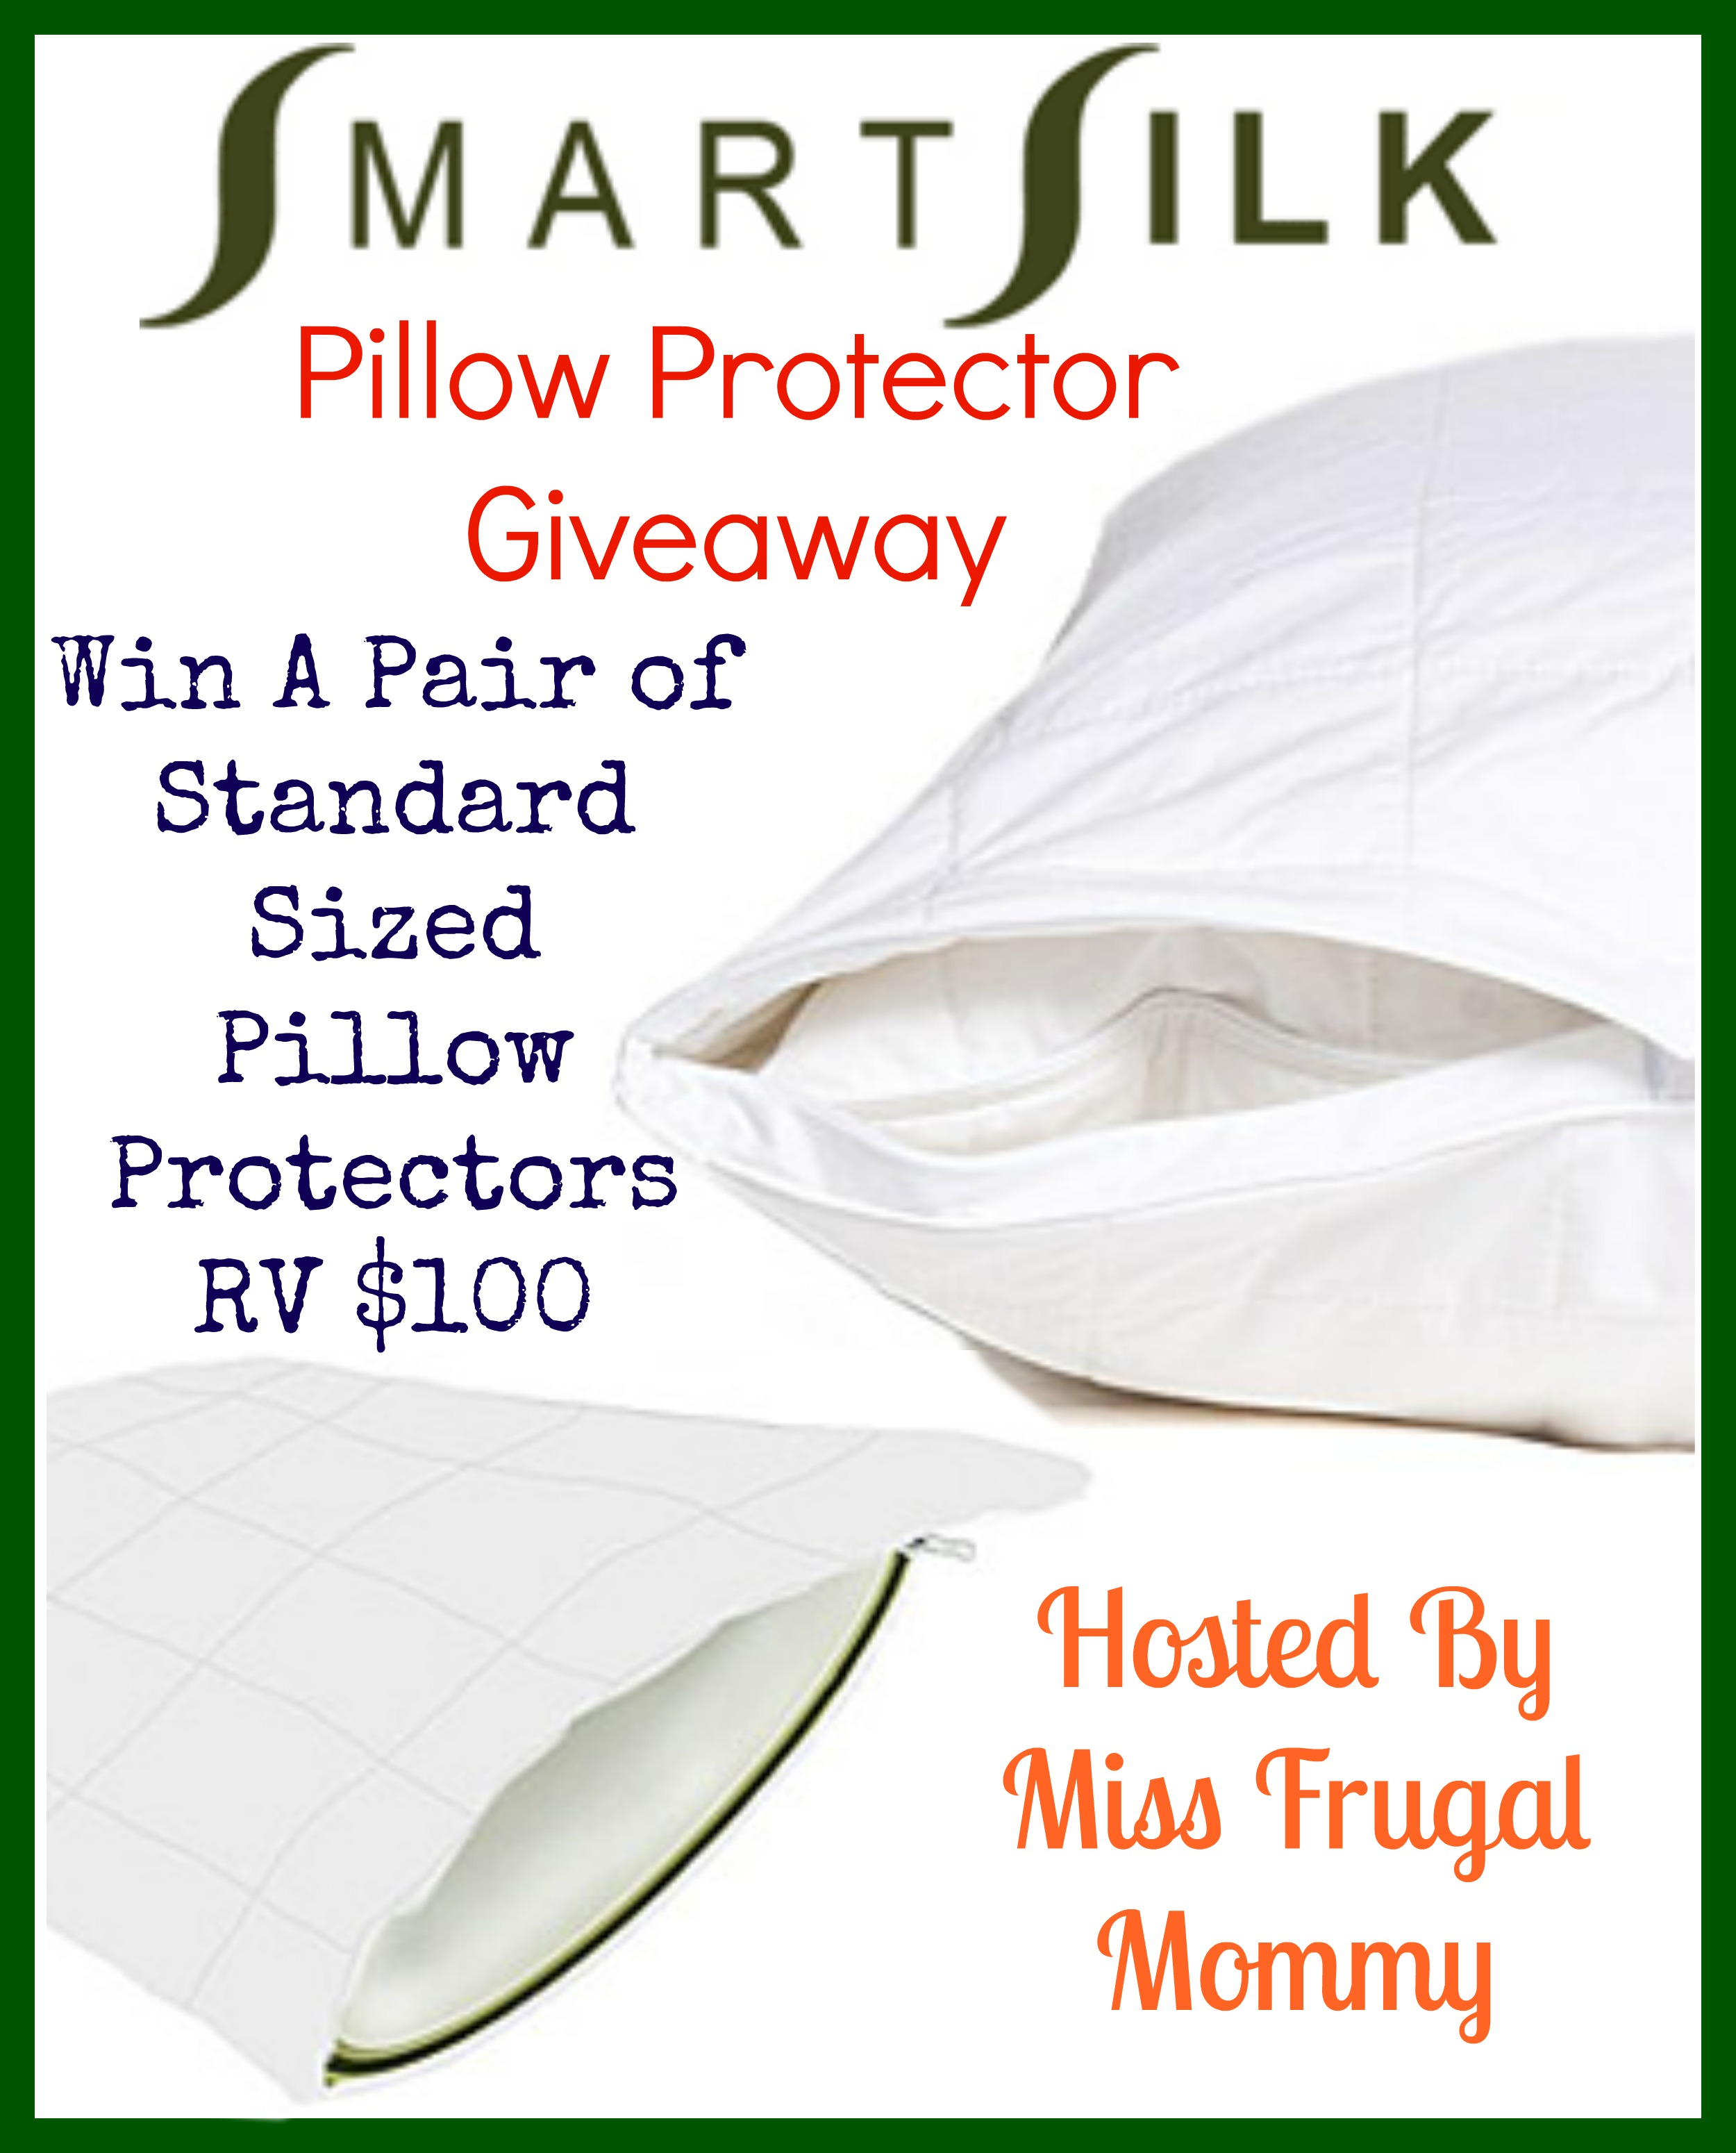 SmartSilk Pillow Protector Giveaway